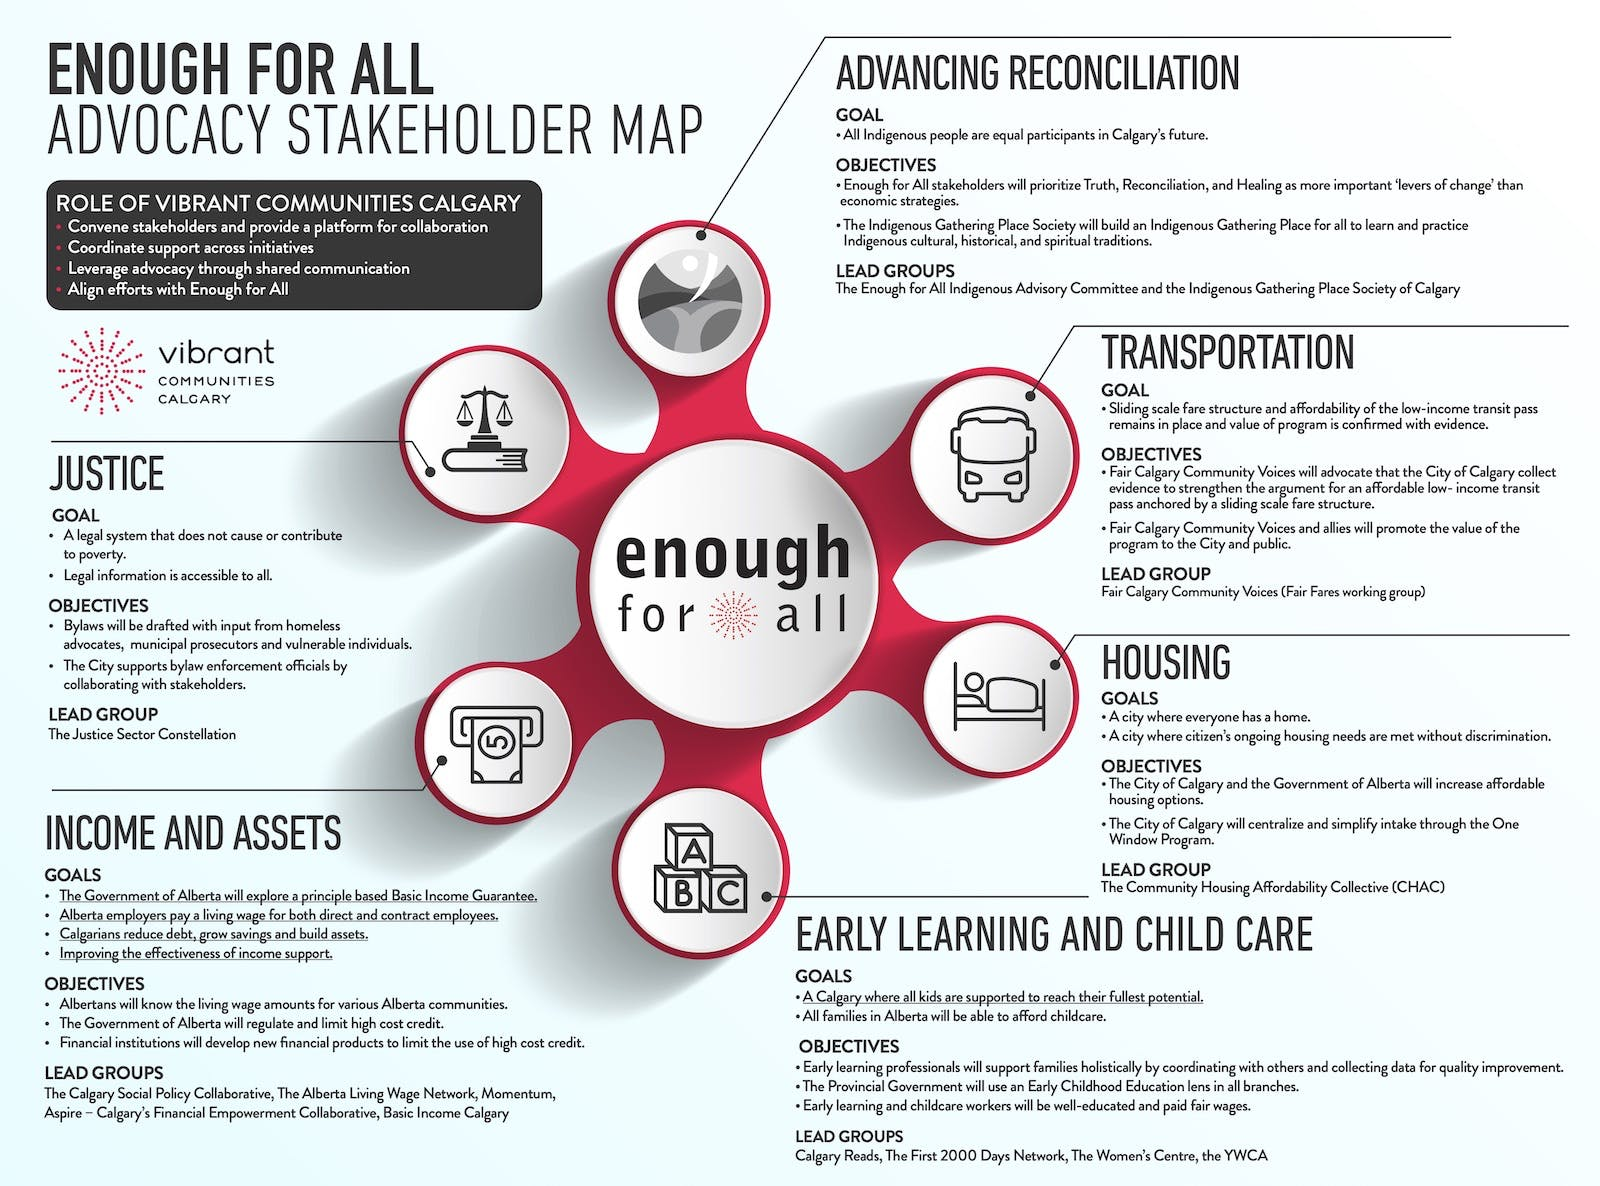 Enough For All advocacy stakeholder map